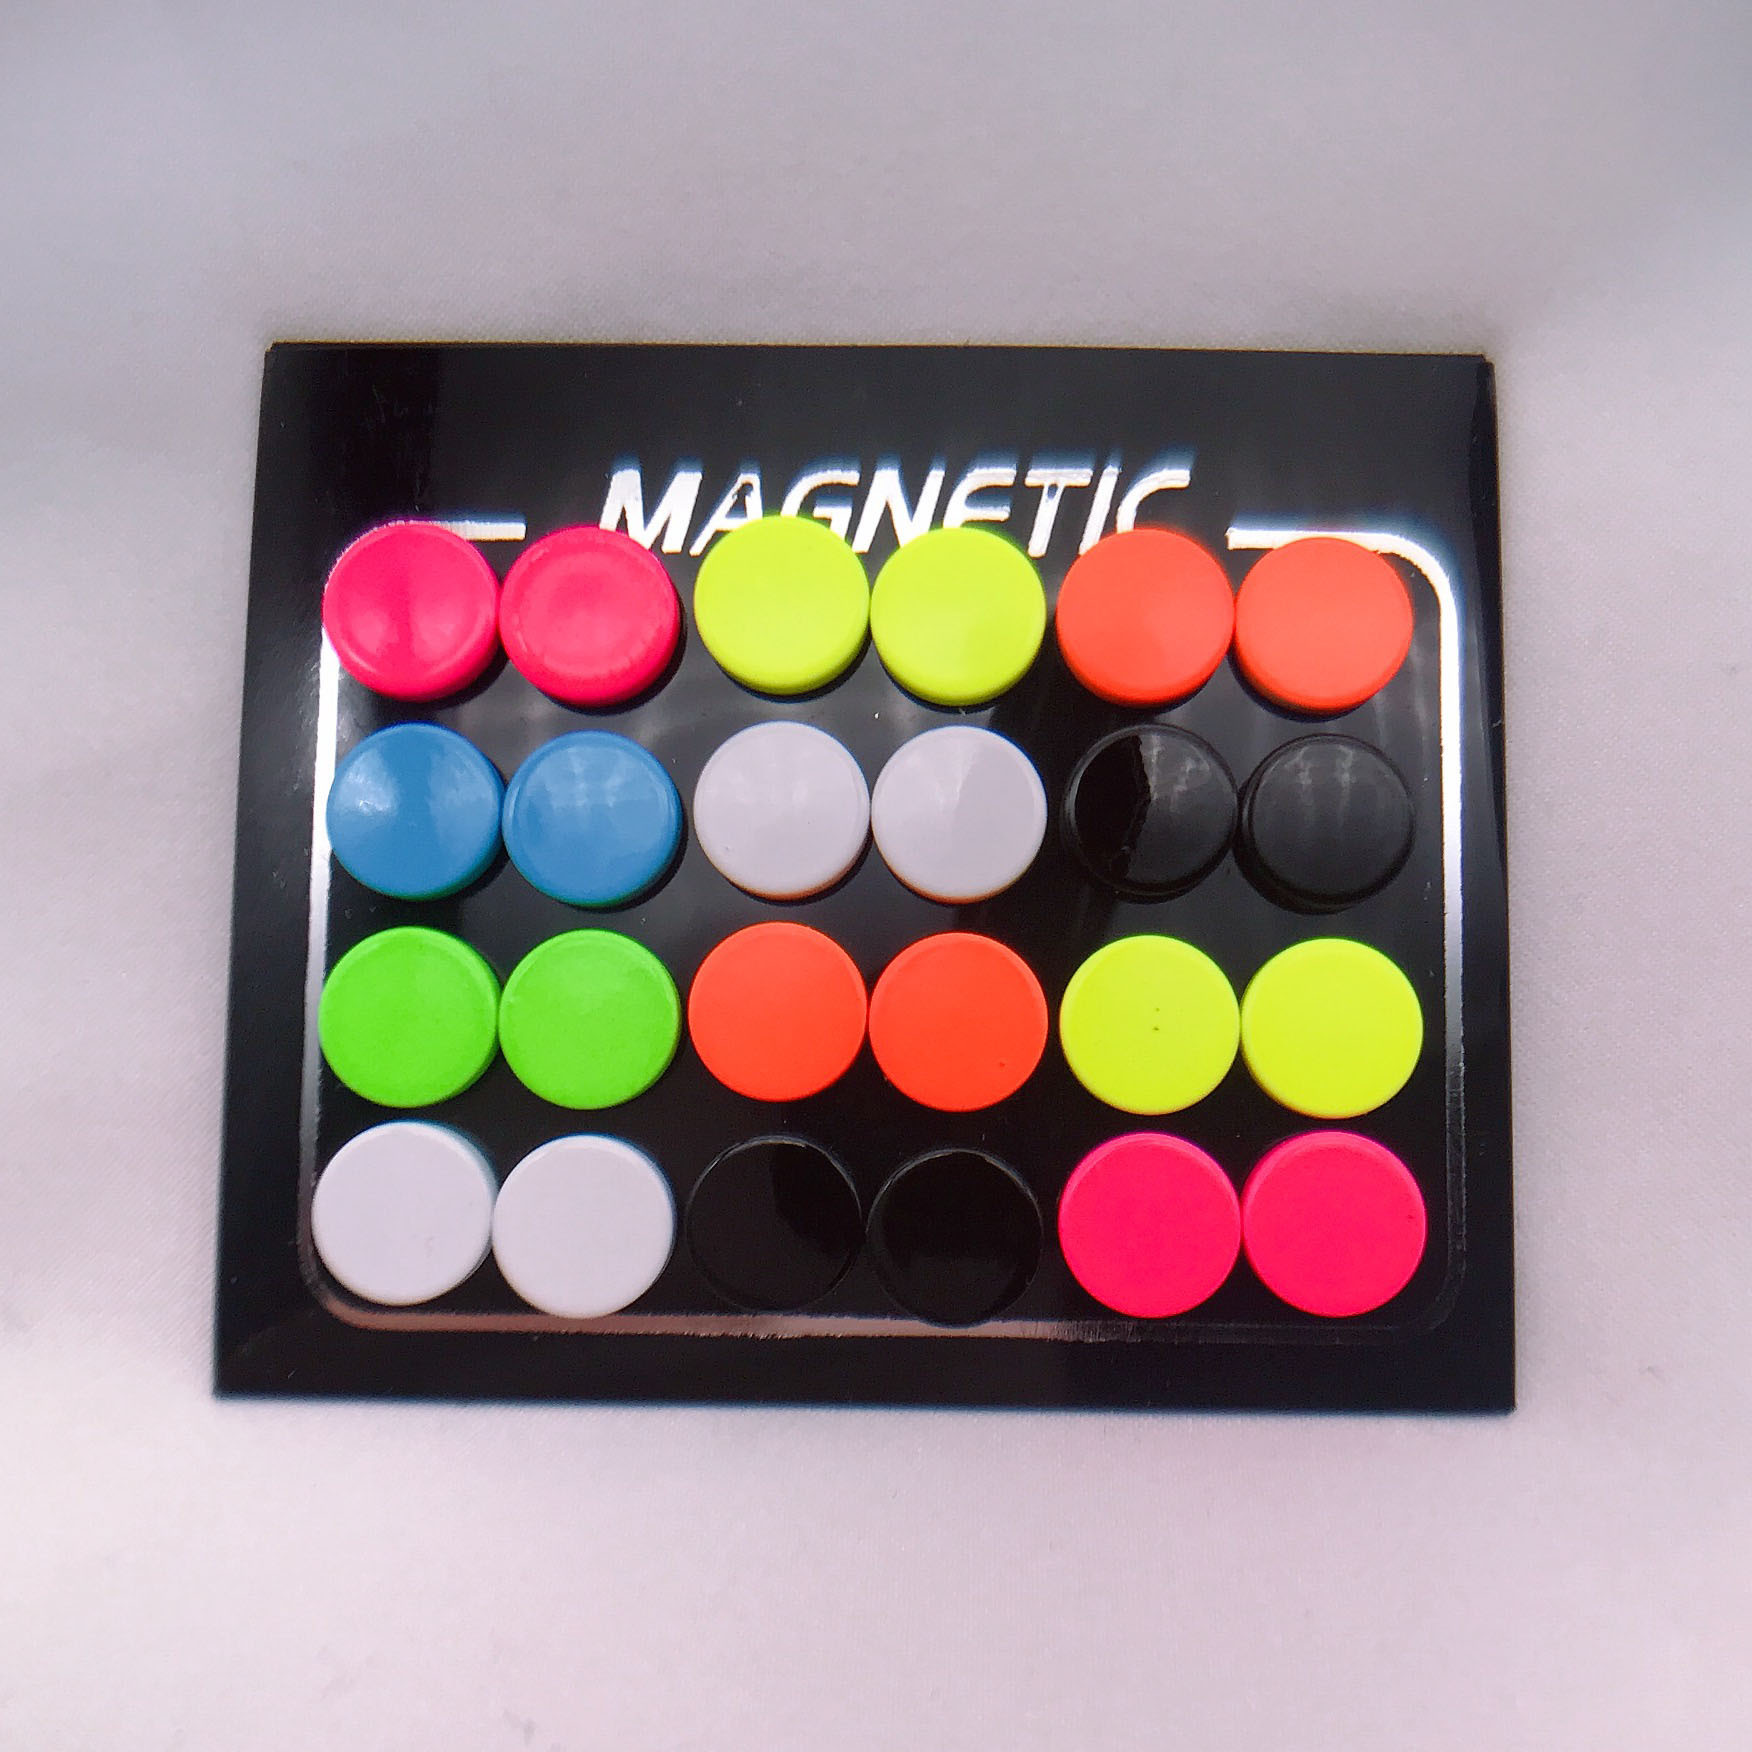 12 Pair lot 6 8 10mm Round Colorful Magnet Stud Earring Punk Magnetic Fake Ear Plug Body Jewelry for Women Men Ear Studs Magic in Stud Earrings from Jewelry Accessories